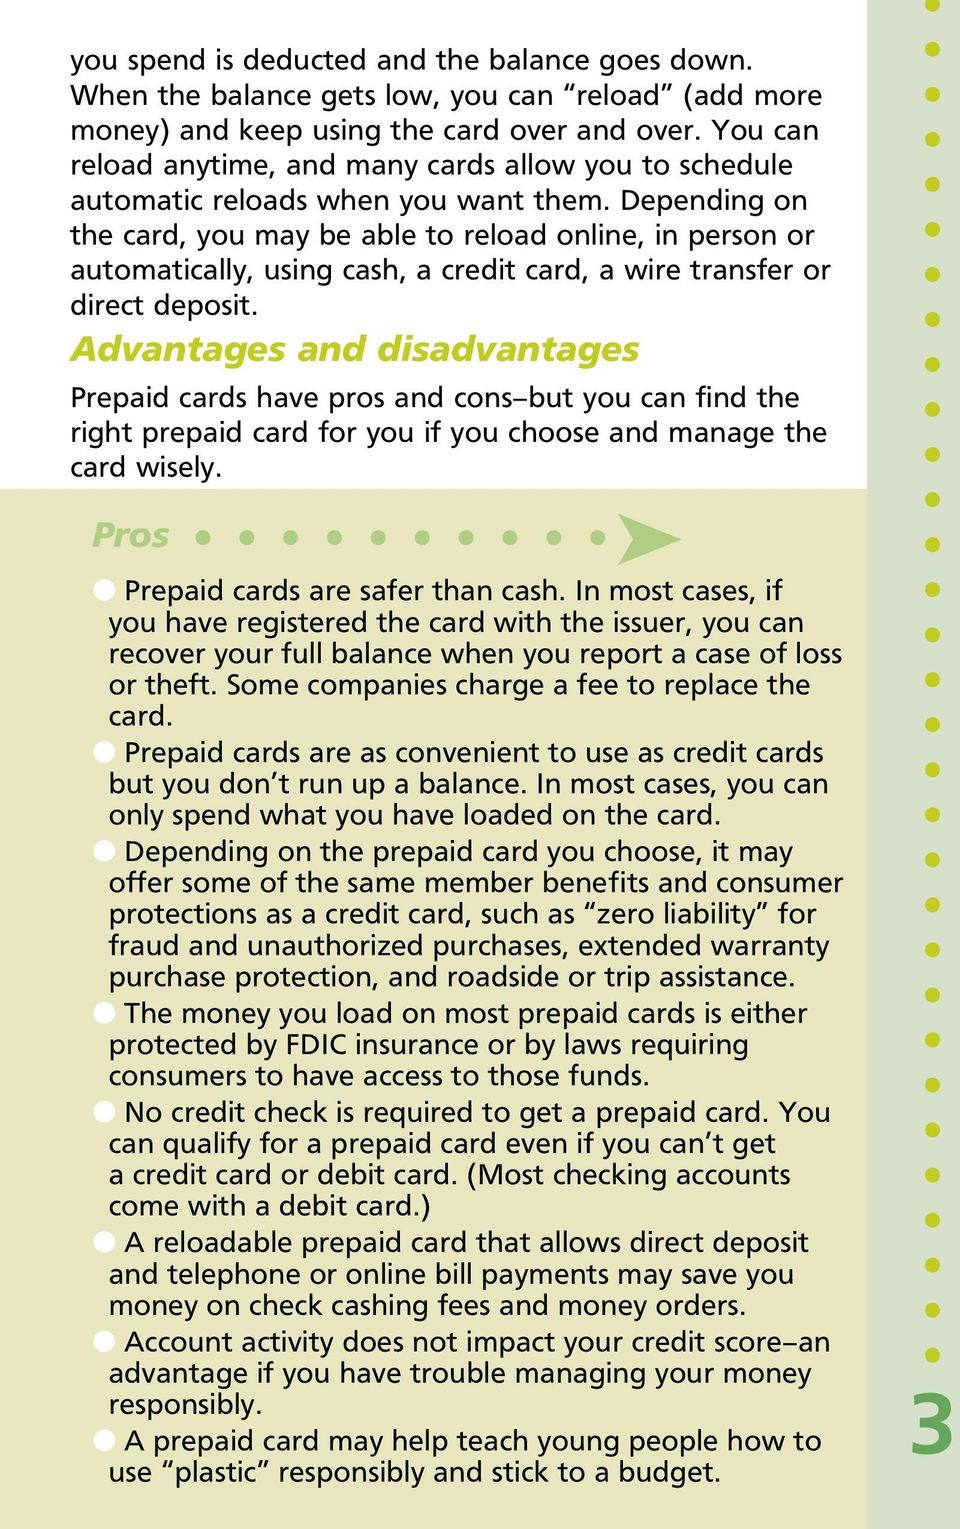 Depending on the card, you may be able to reload online, in person or automatically, using cash, a credit card, a wire transfer or direct deposit.